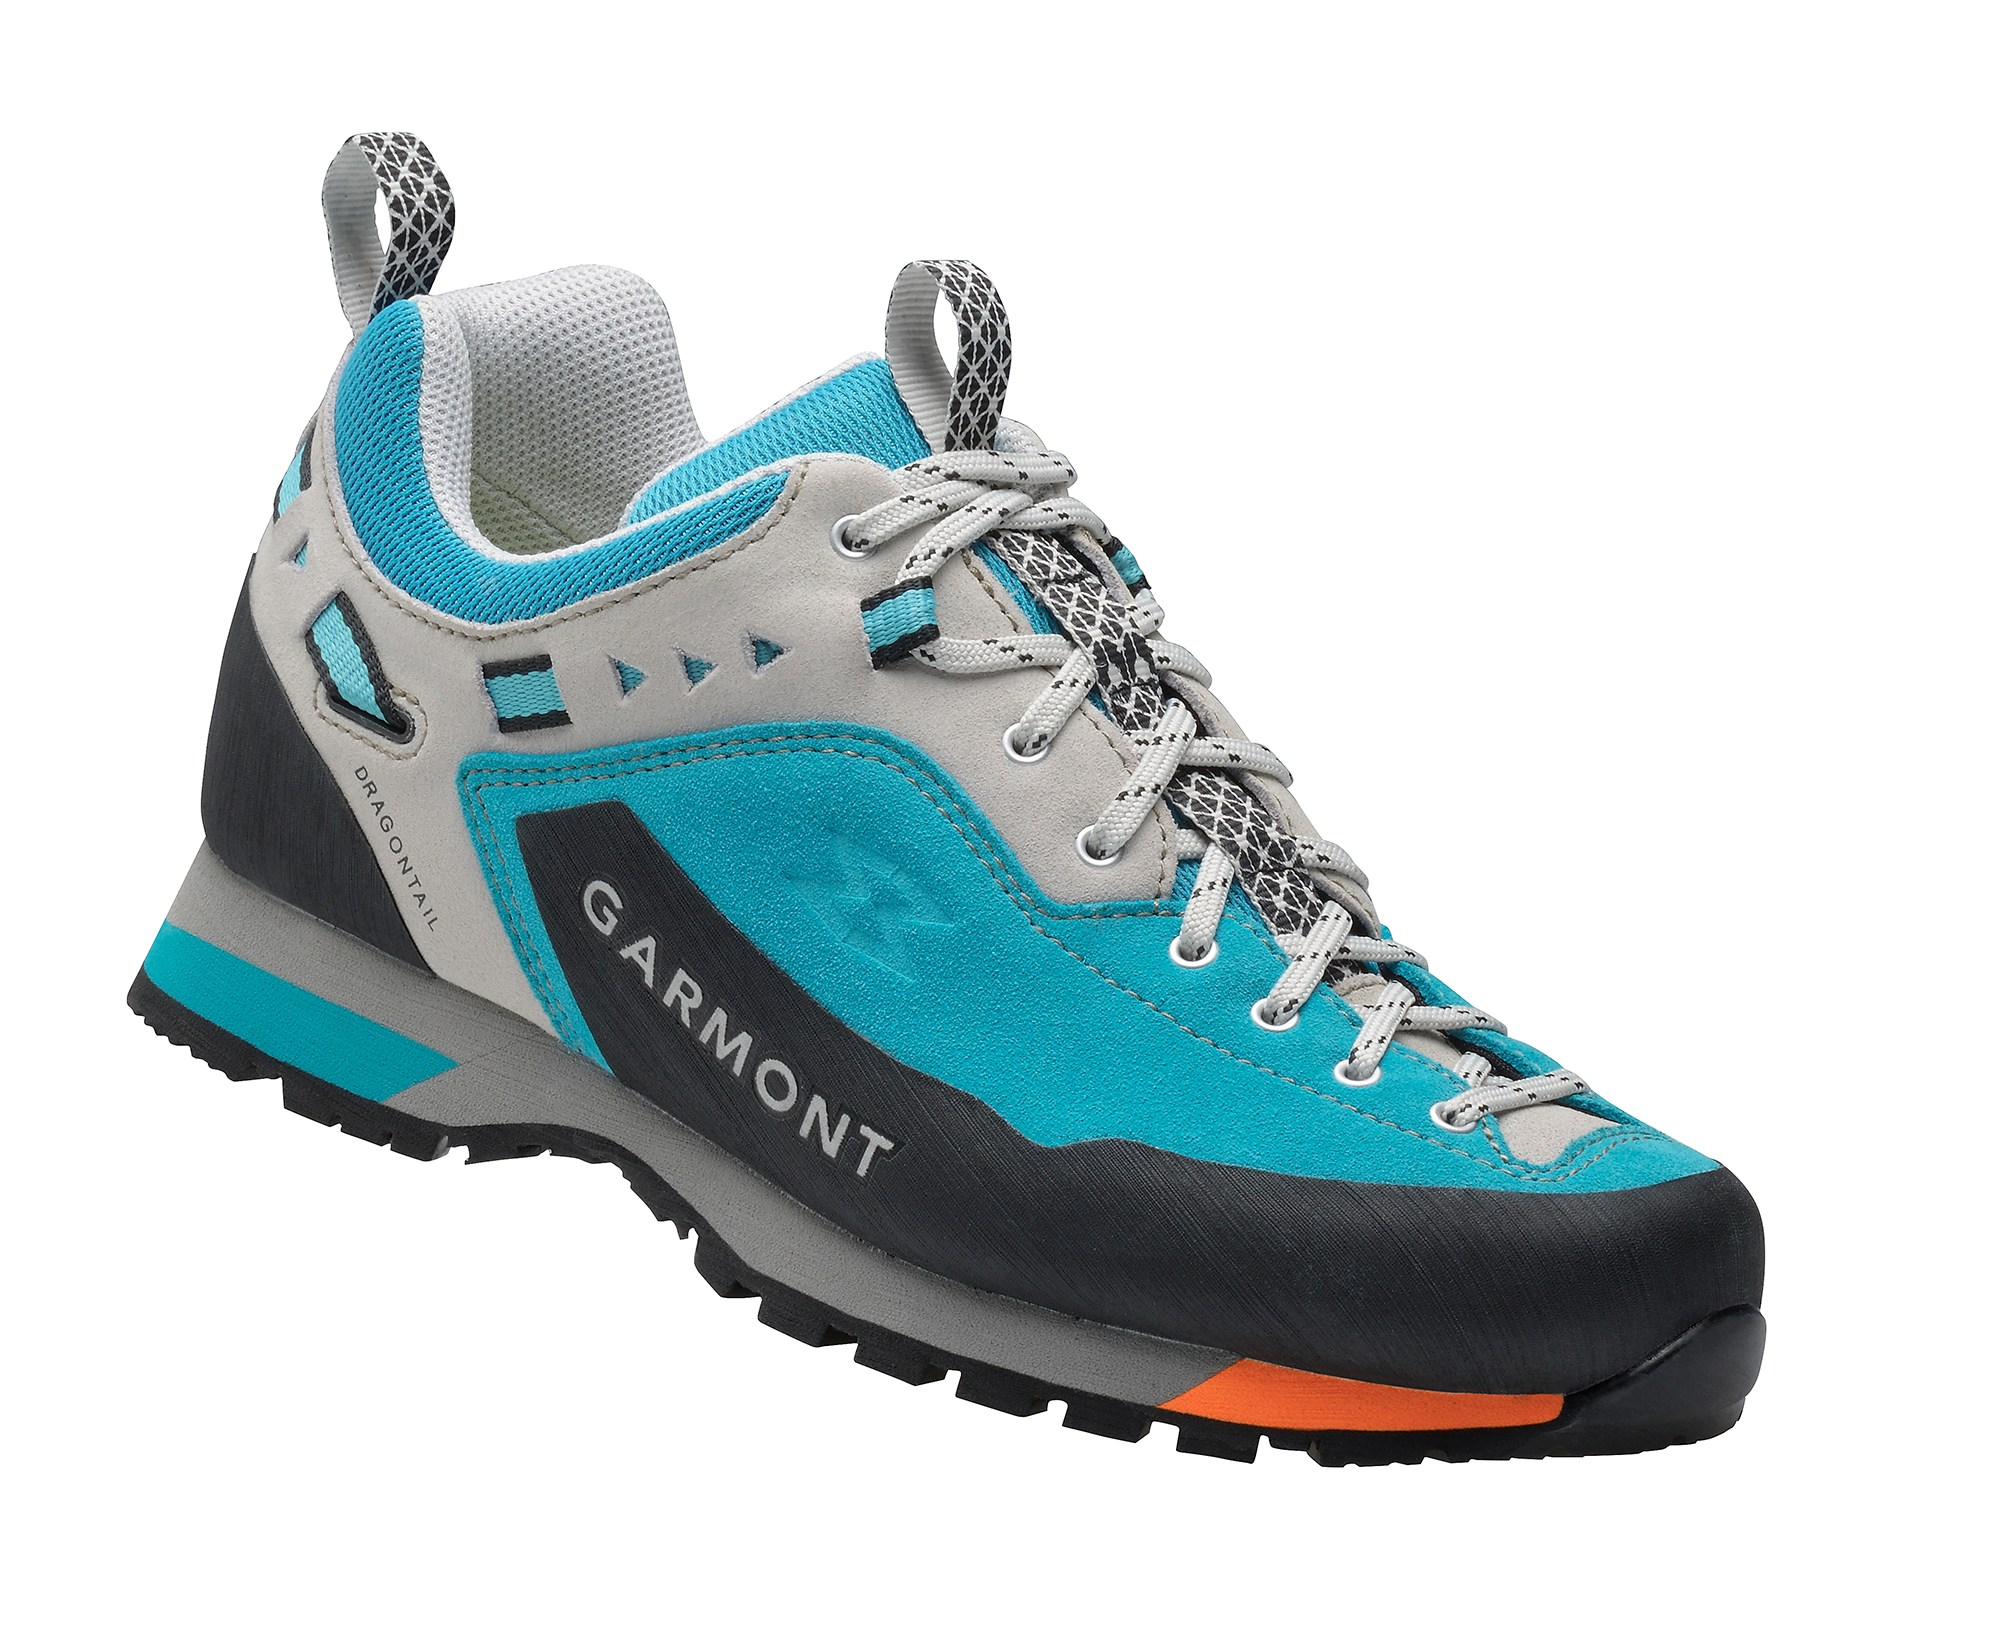 Garmont Dragontail LT Approach Shoes - Women's